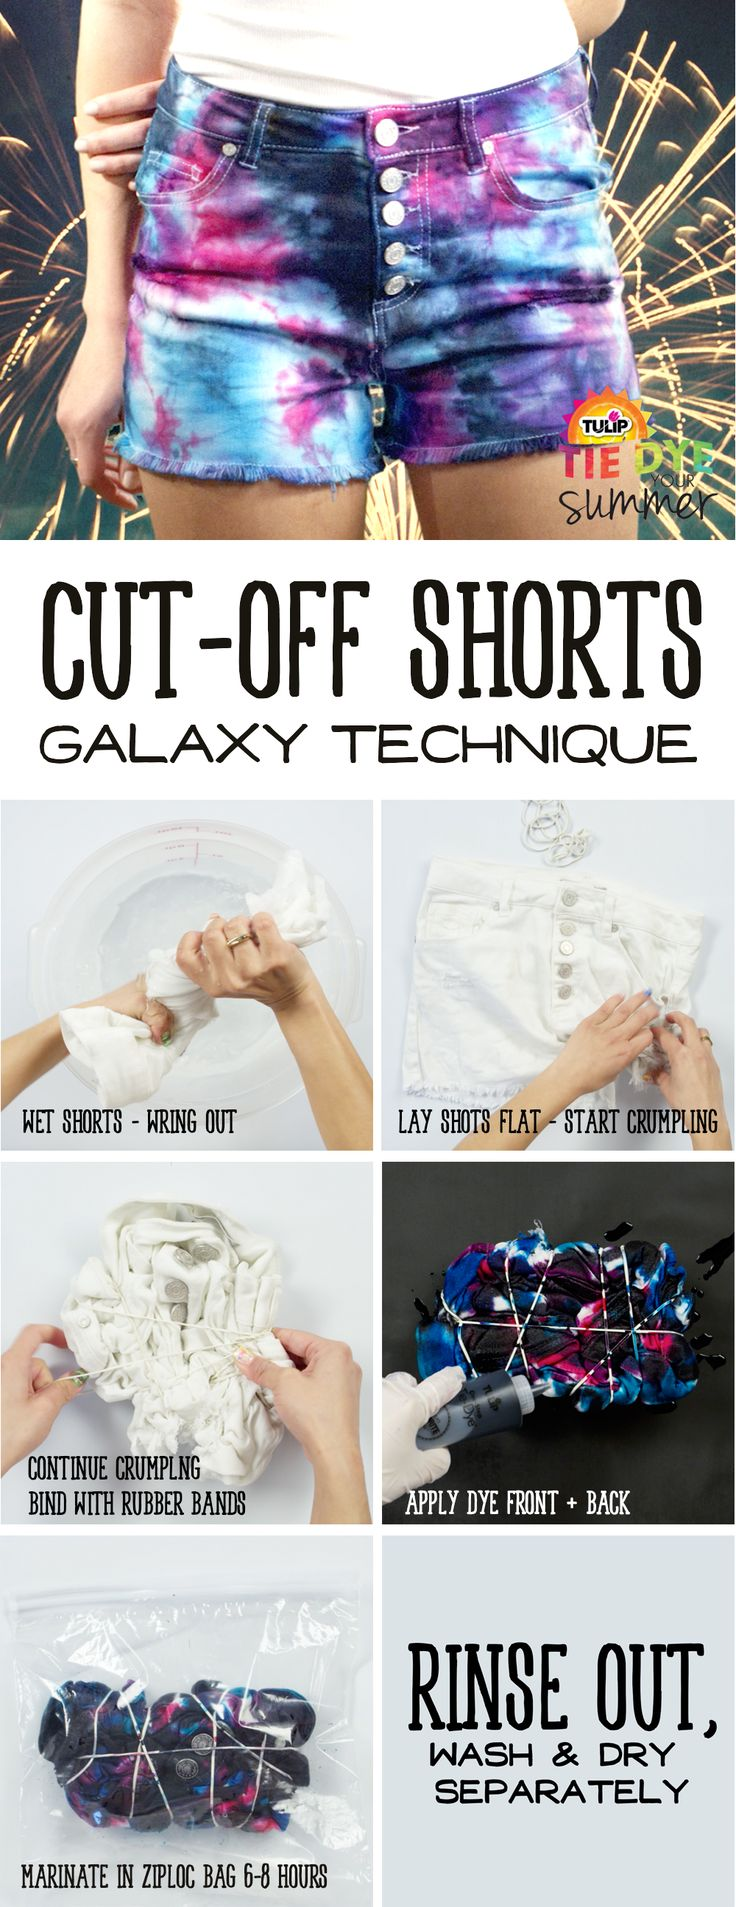 These galaxy shorts are so cooL!